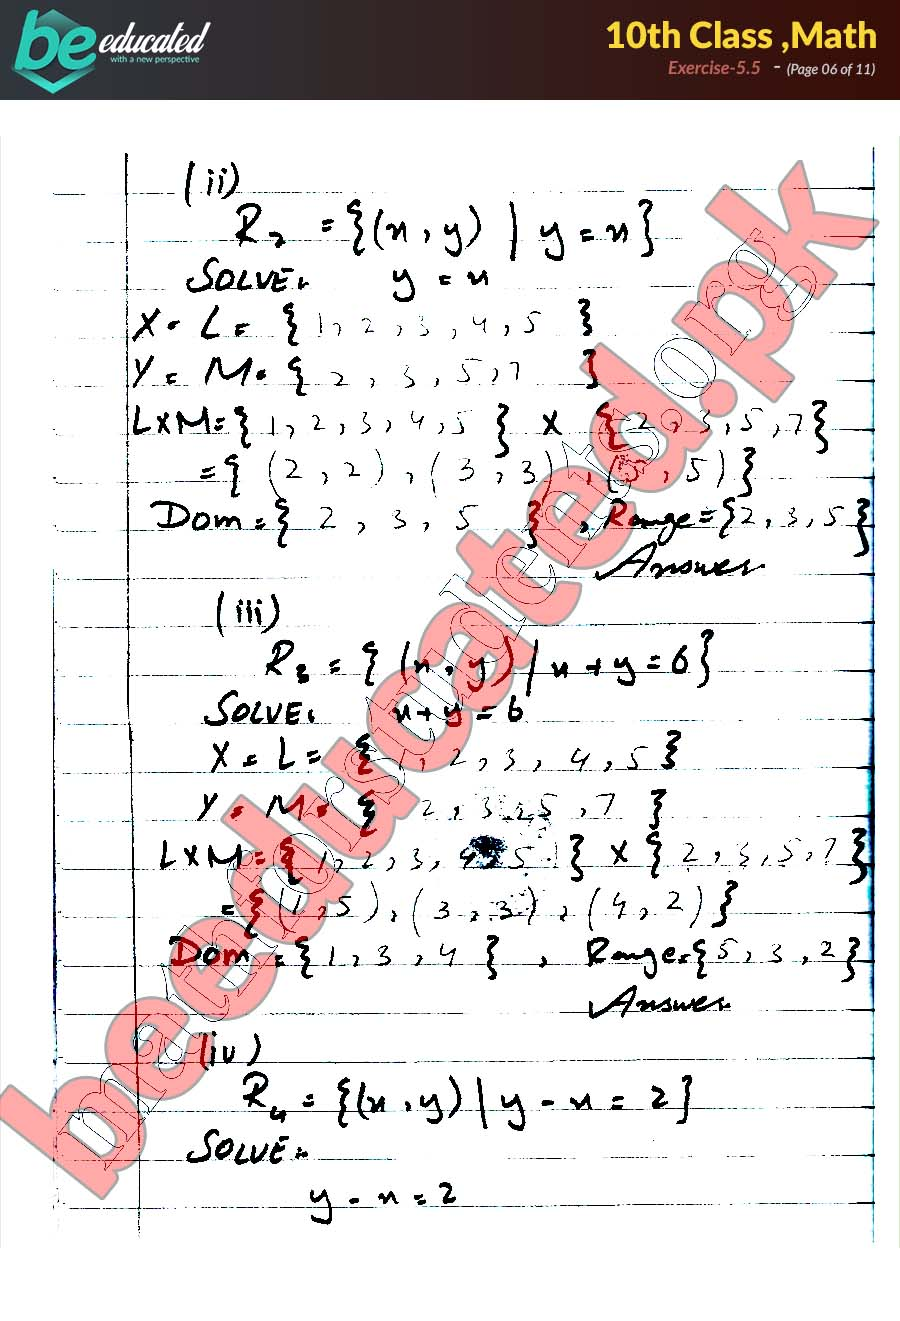 Exercise 5 5 Math 10th Class Notes - Matric Part 2 Notes